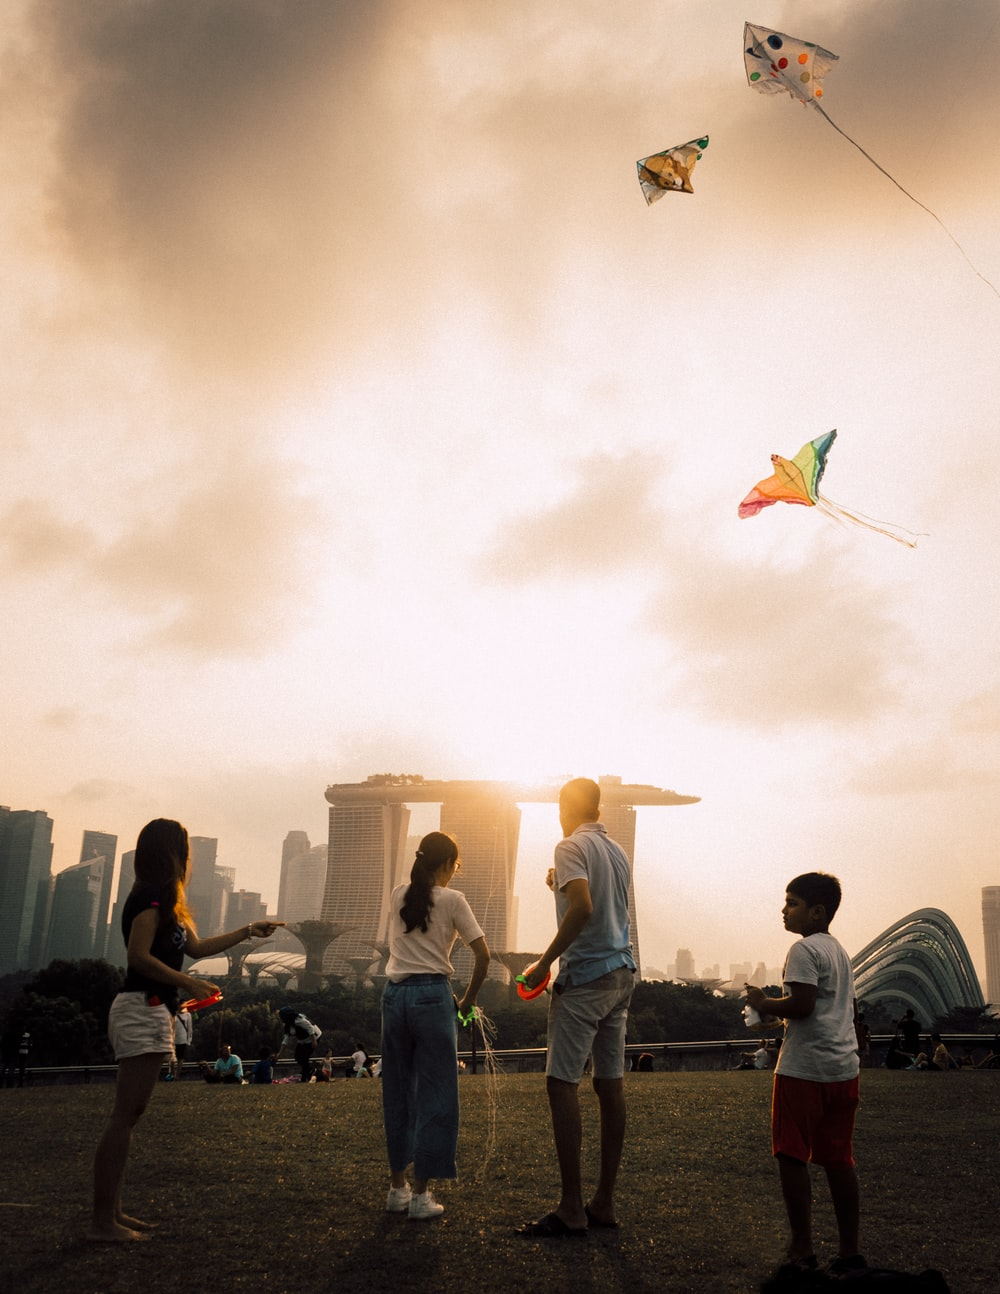 four person playing kite on grass field